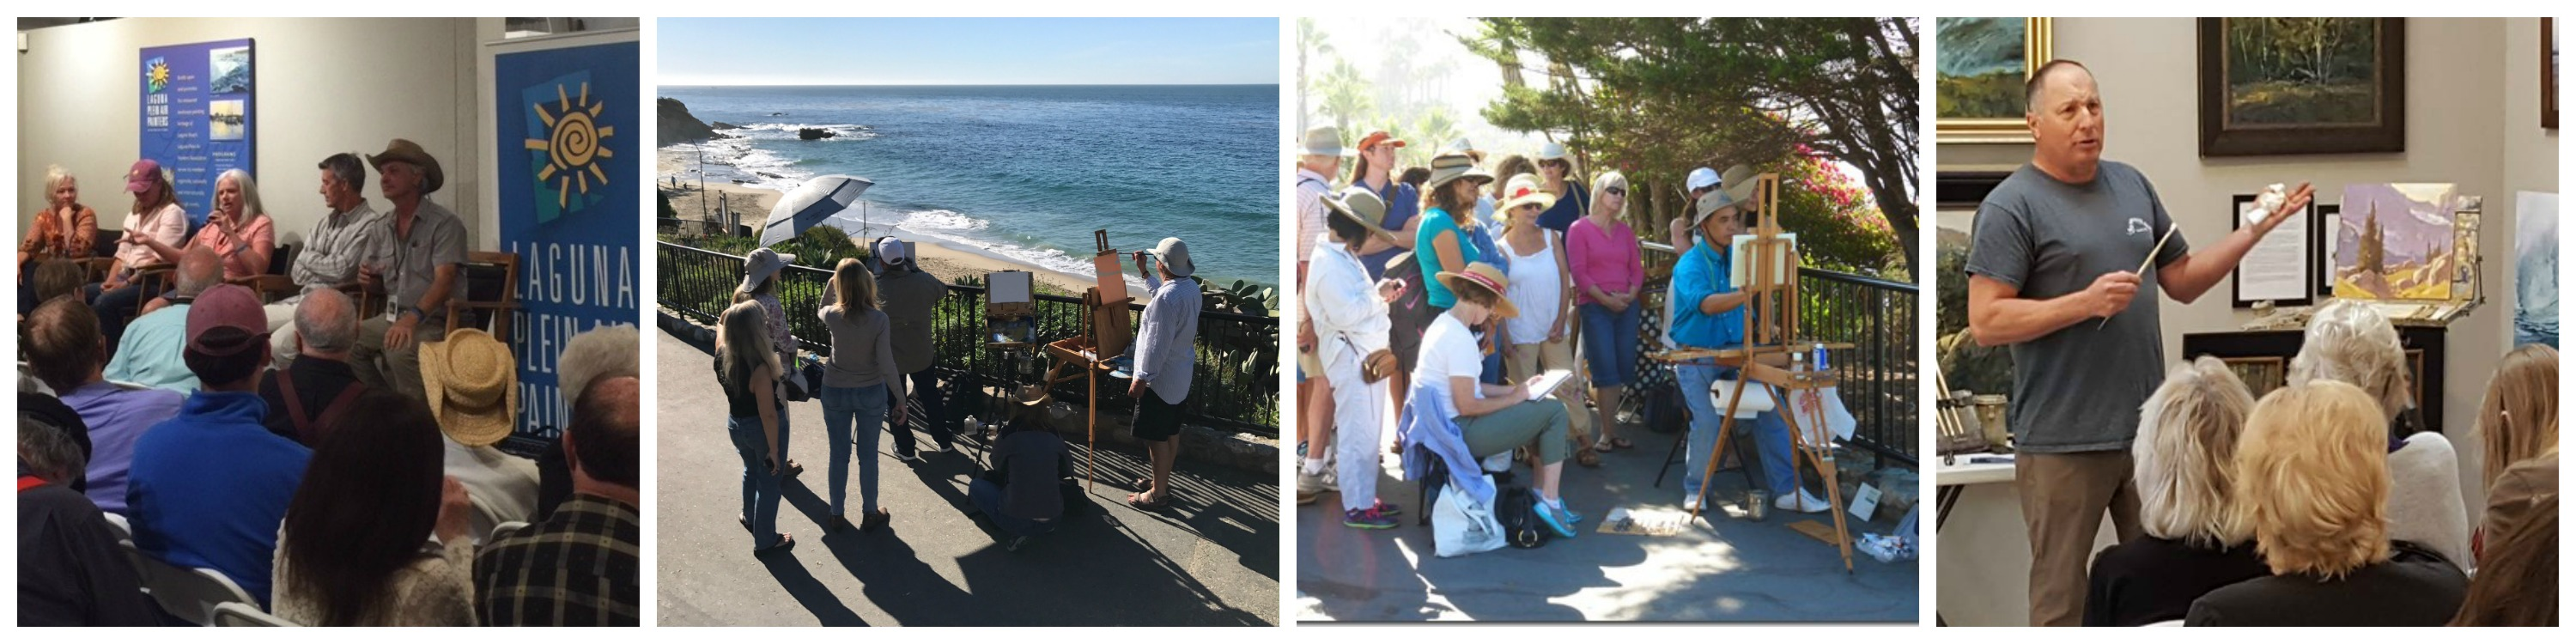 LPAPA's Plein Air Project - The Now Generation